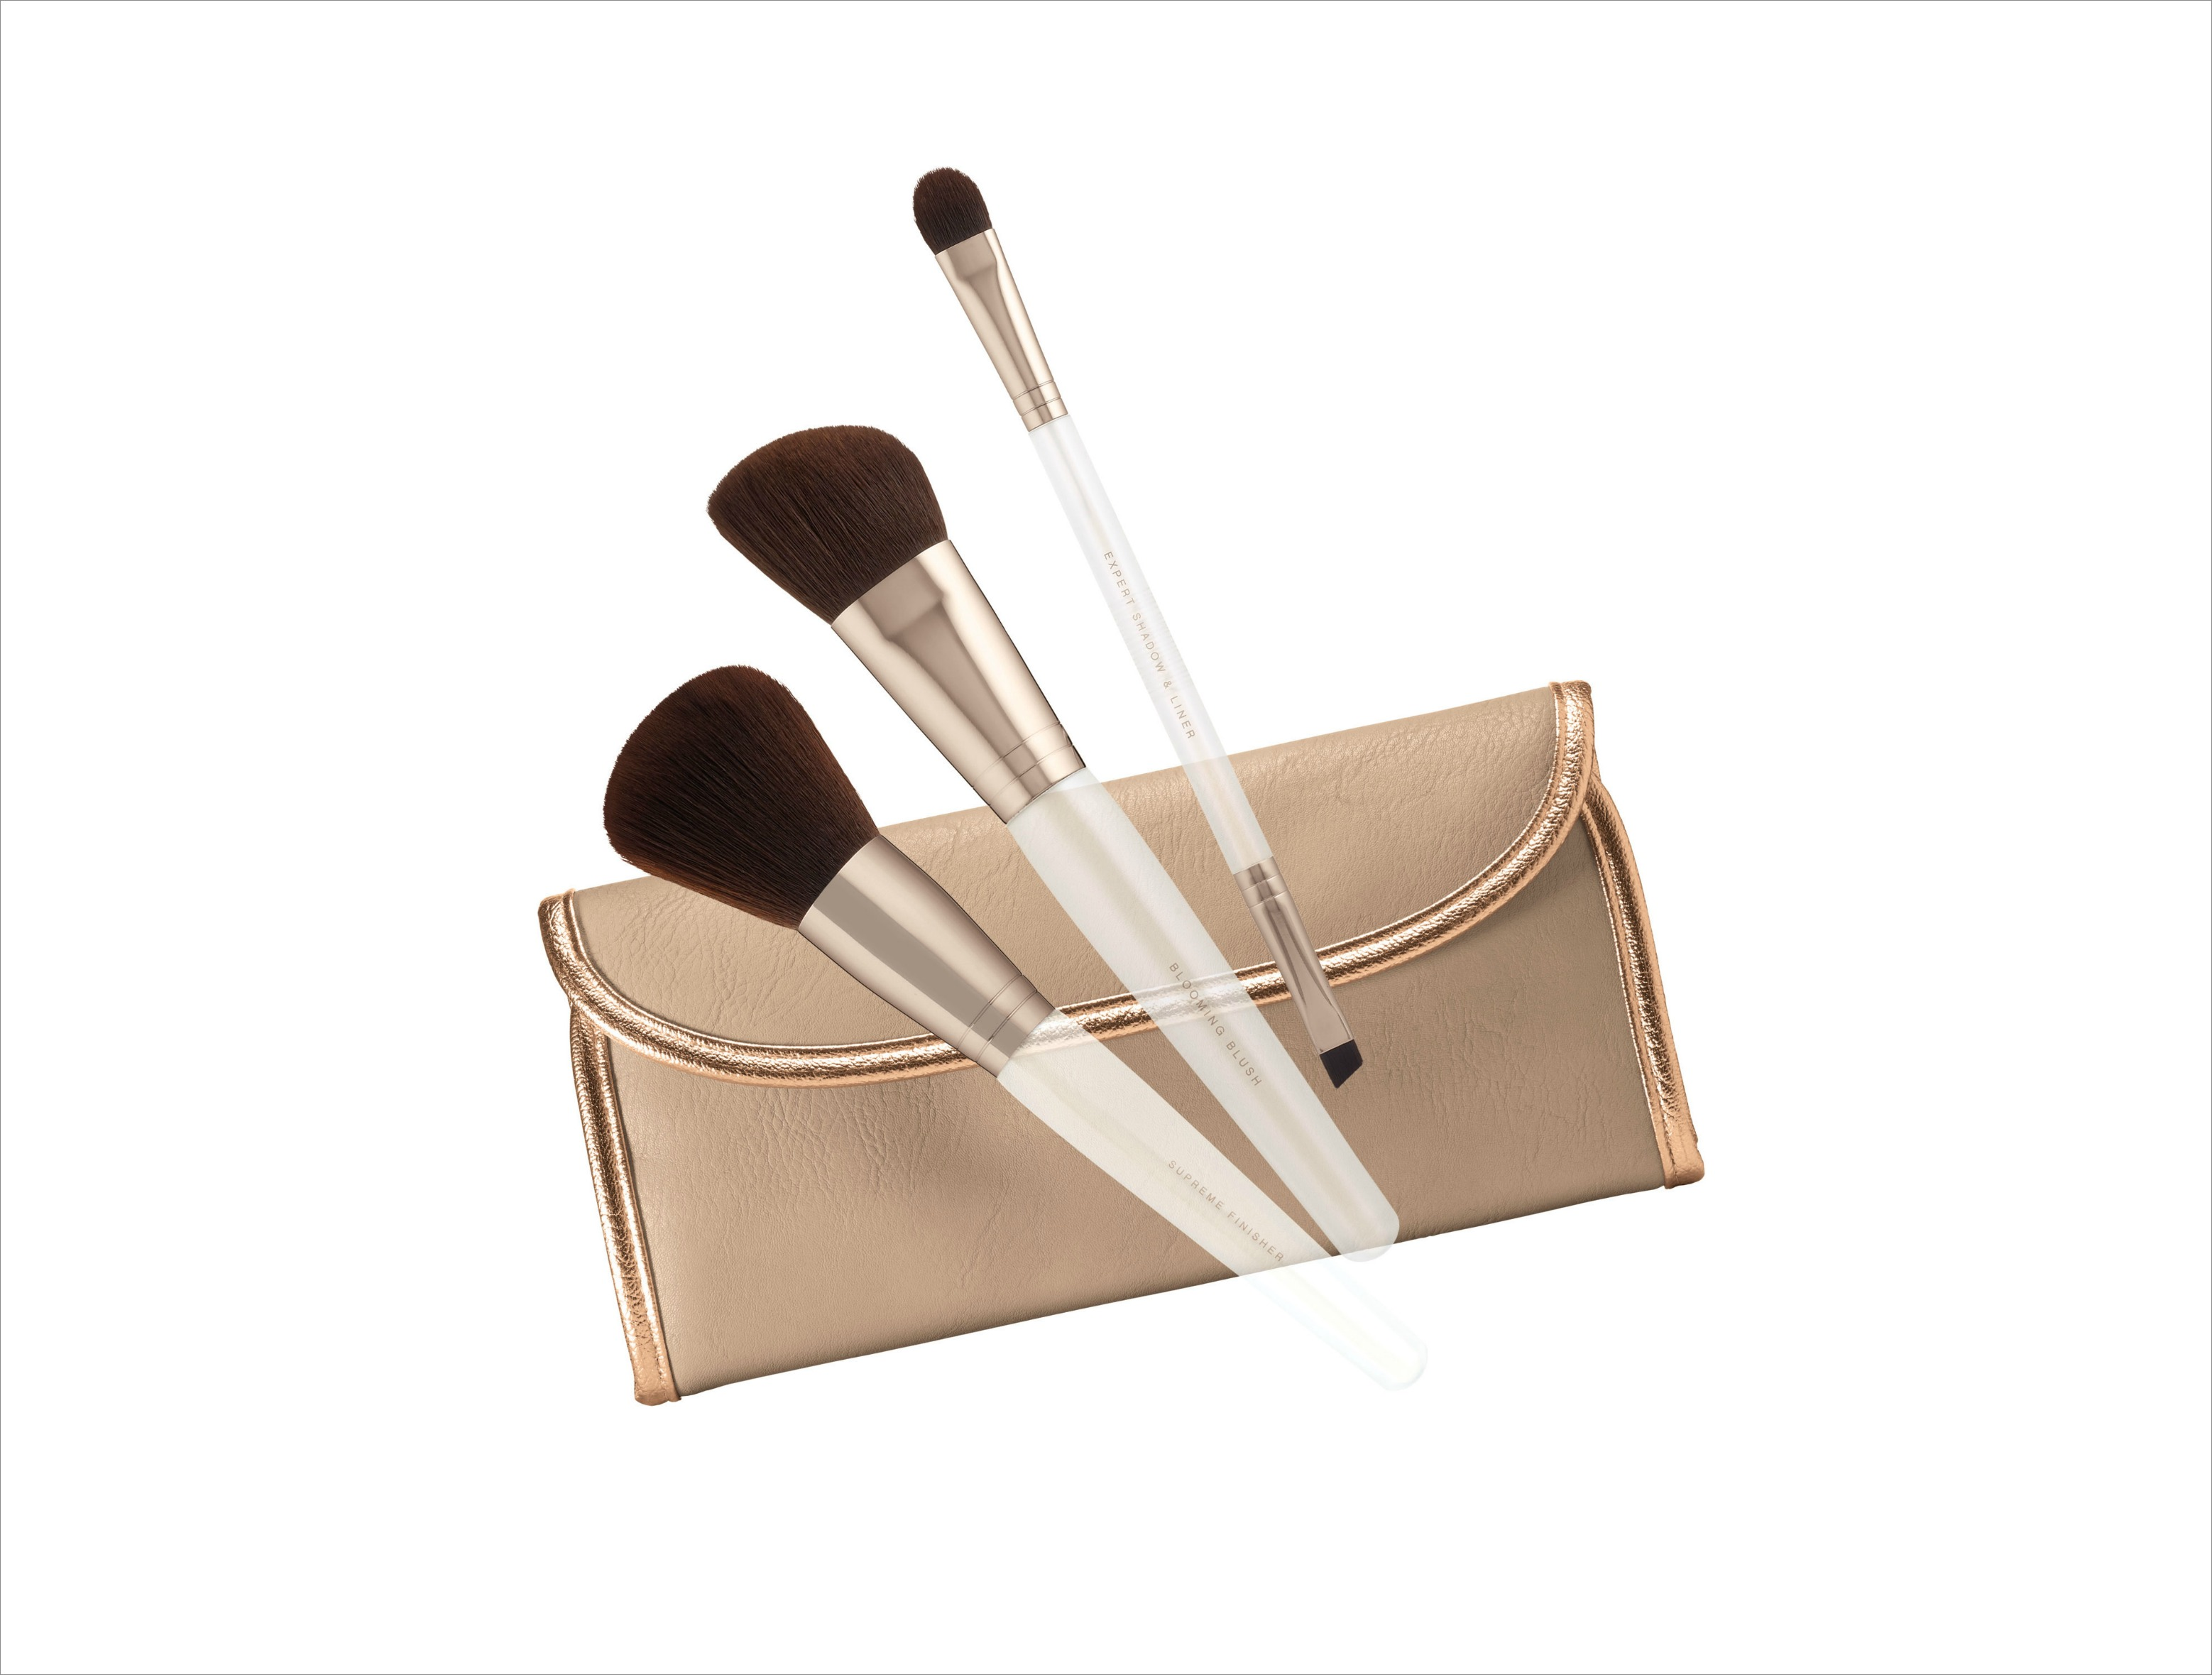 Bare Minerals Give Me a Swirl brush set holiday gift ideas